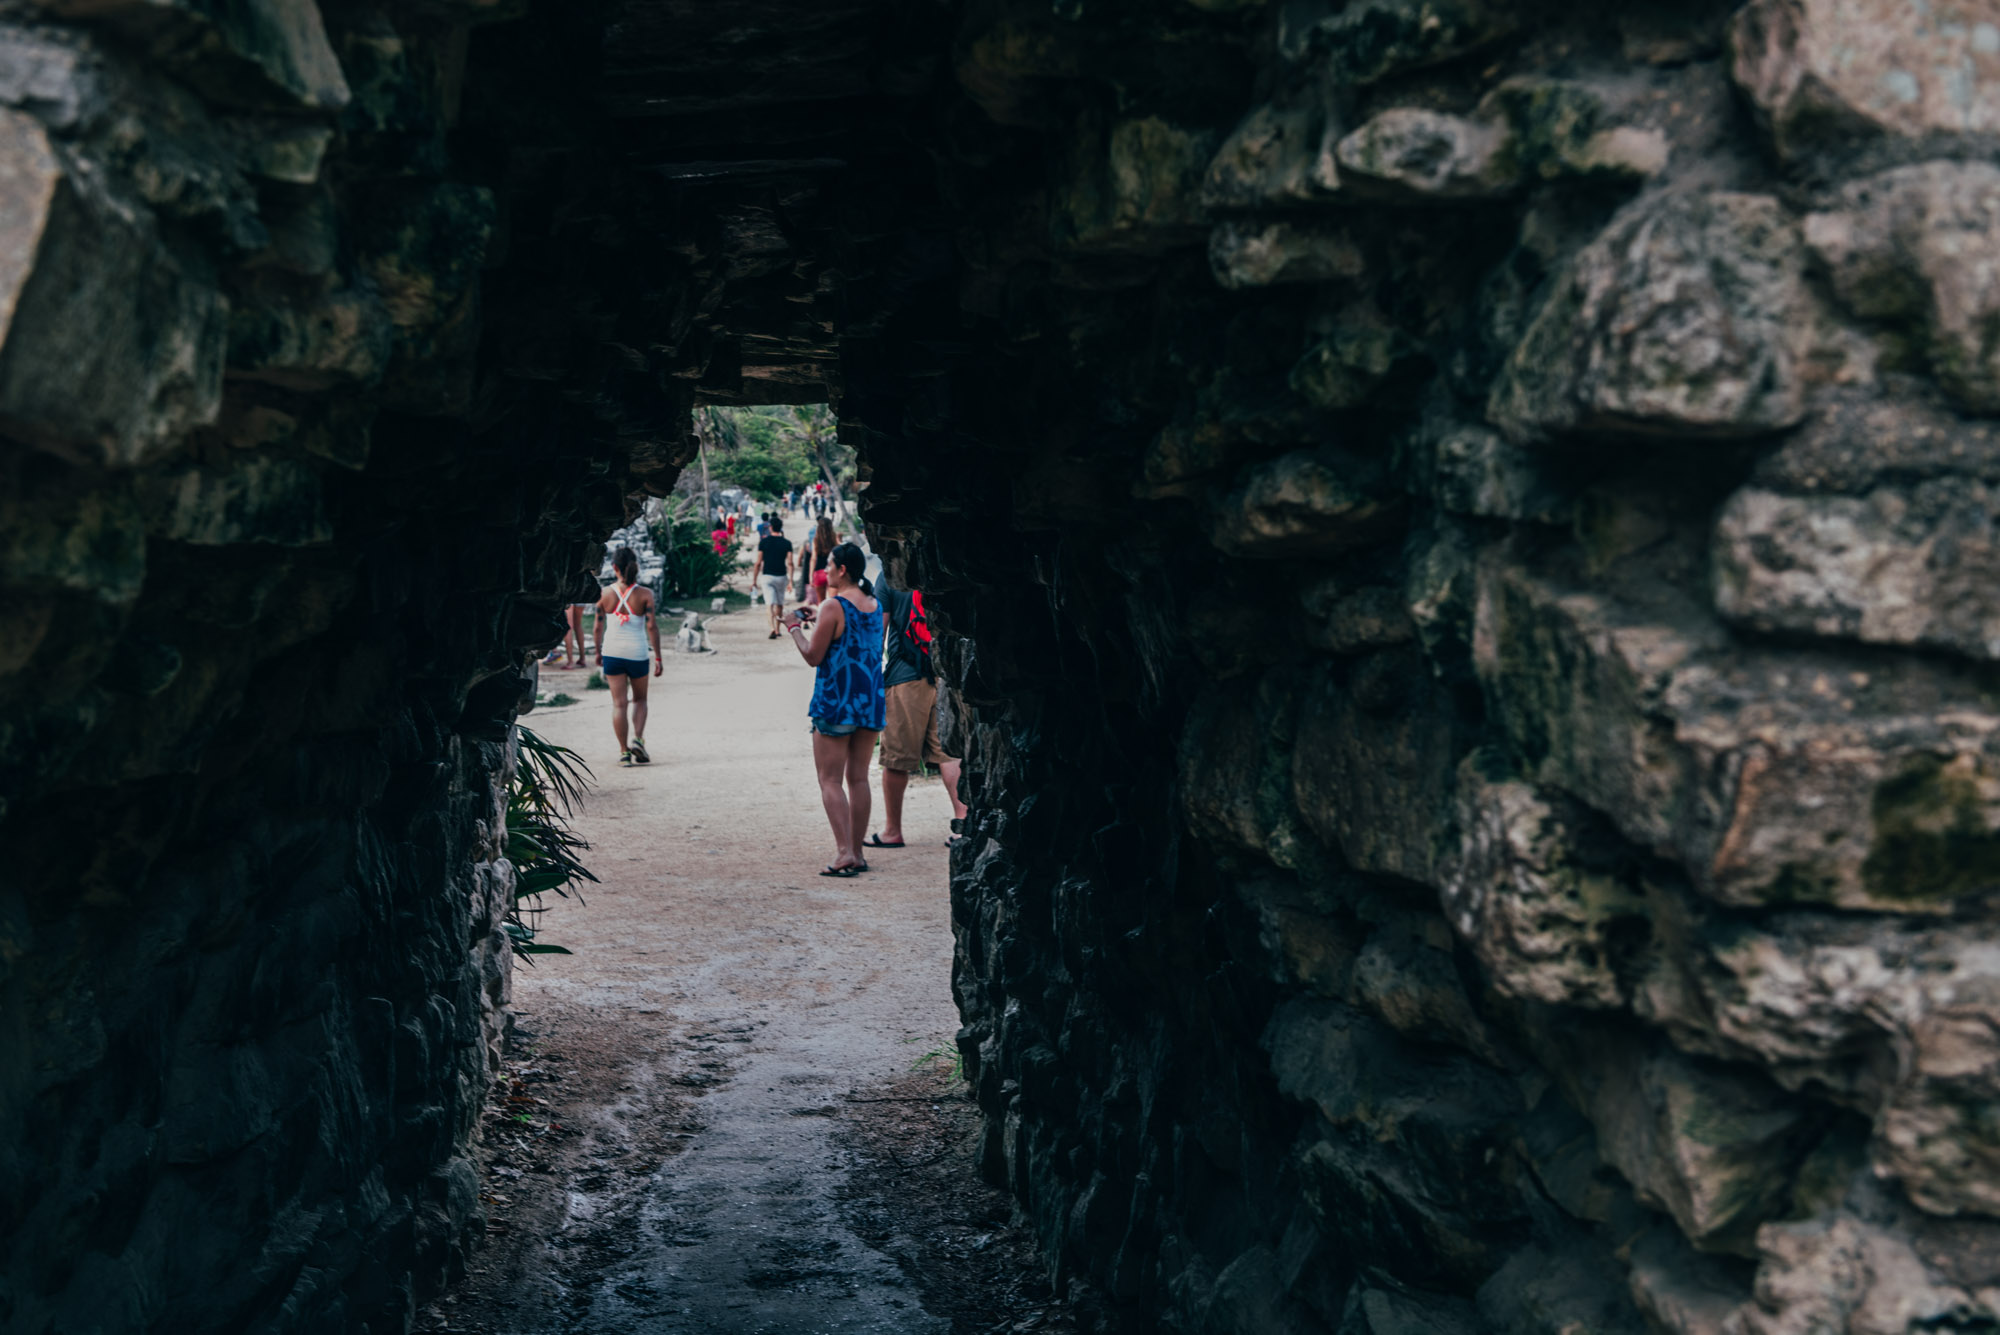 Looking through the tunnel